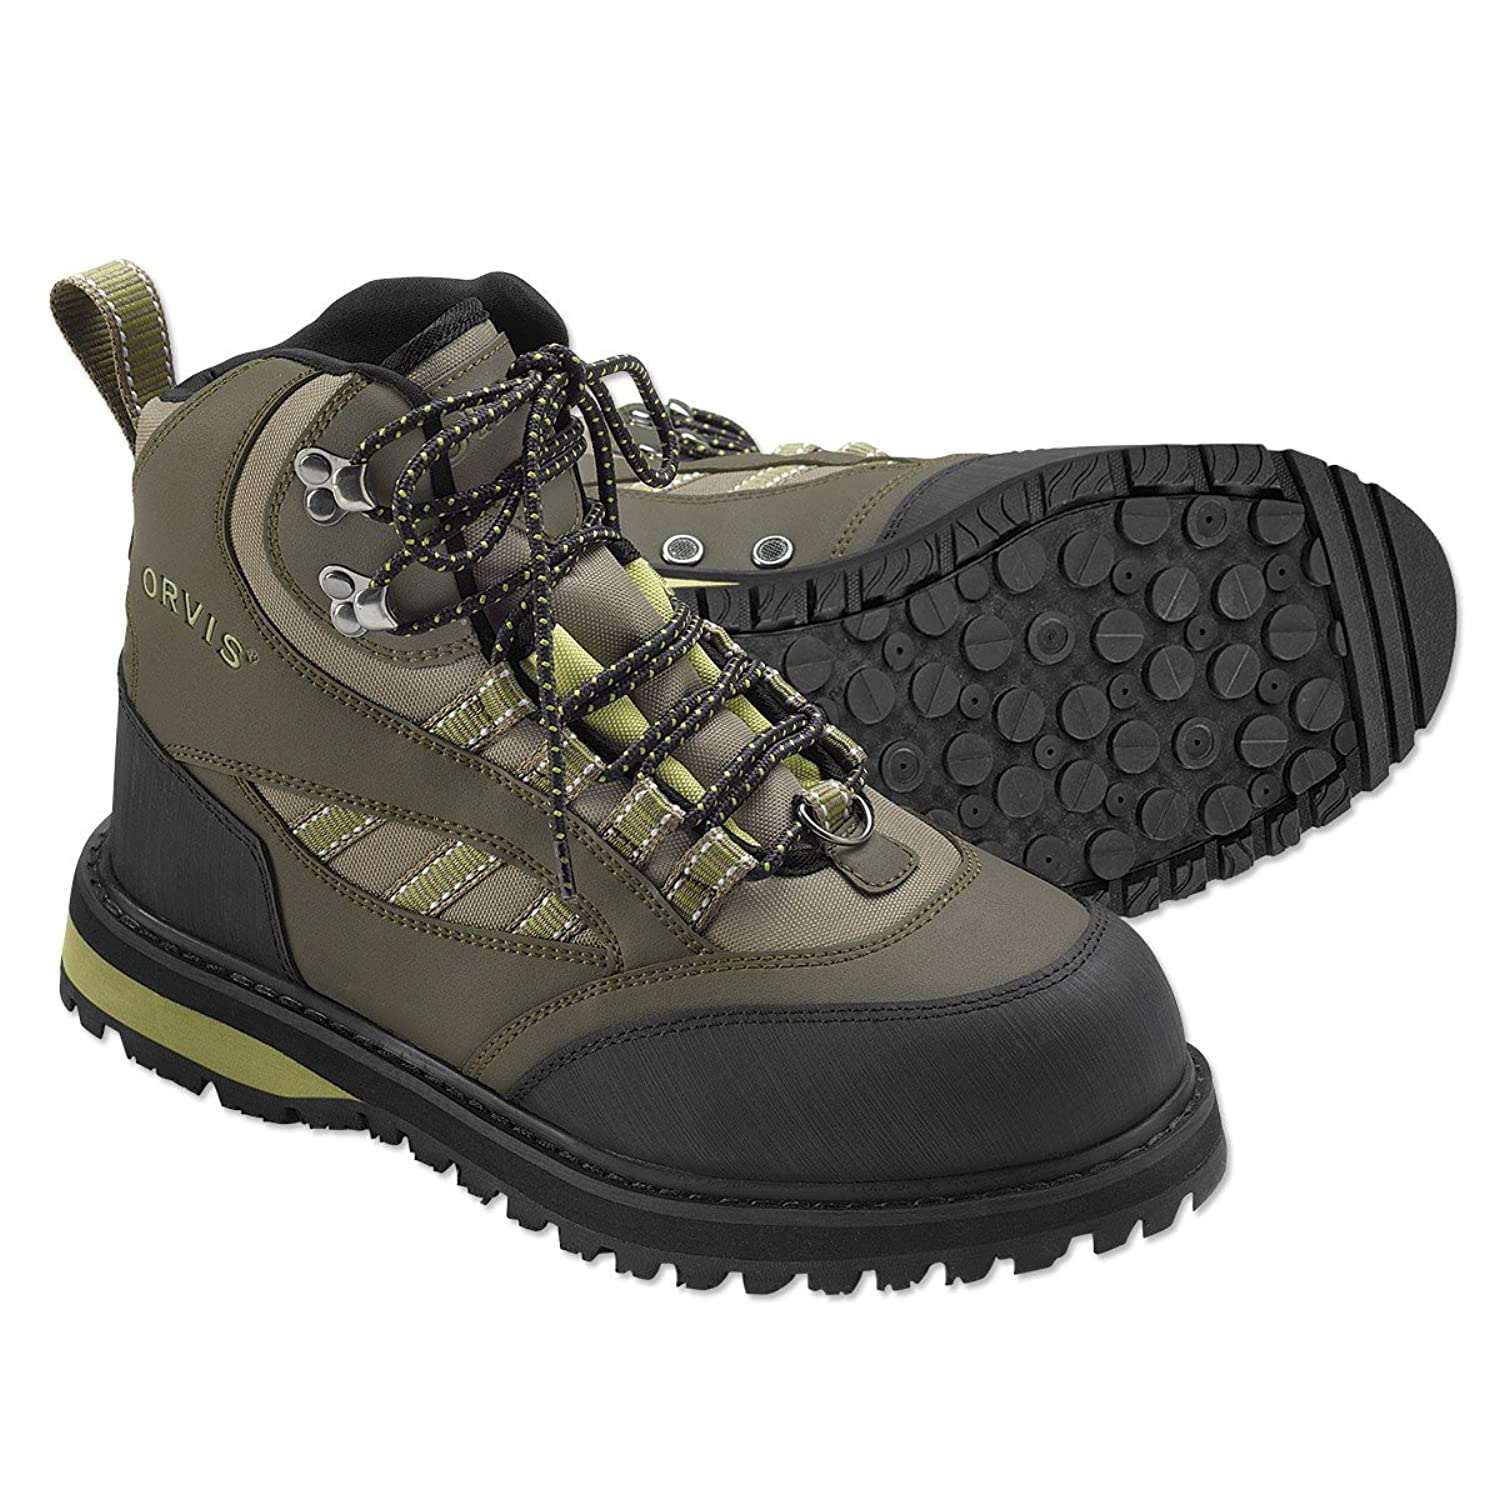 Orvis Women's Encounter Wading Boot - Rubber B00WGYK7IS 10 M US